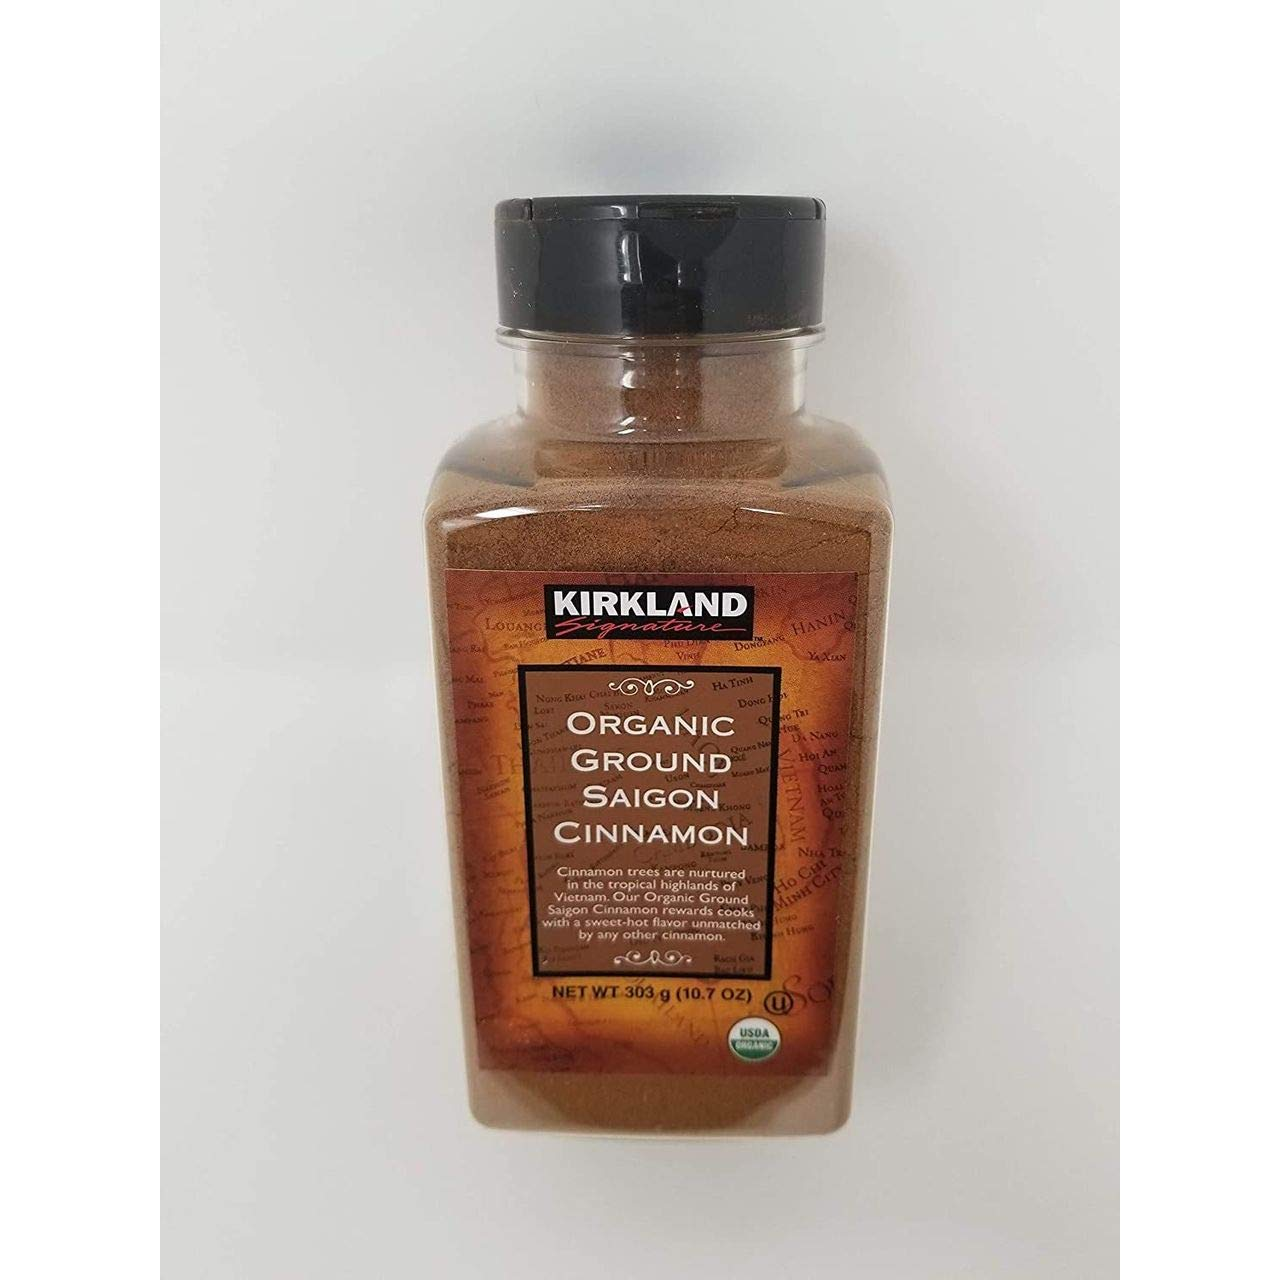 Kirkland Organic Ground Saigon Cinnamon -10.7 oz